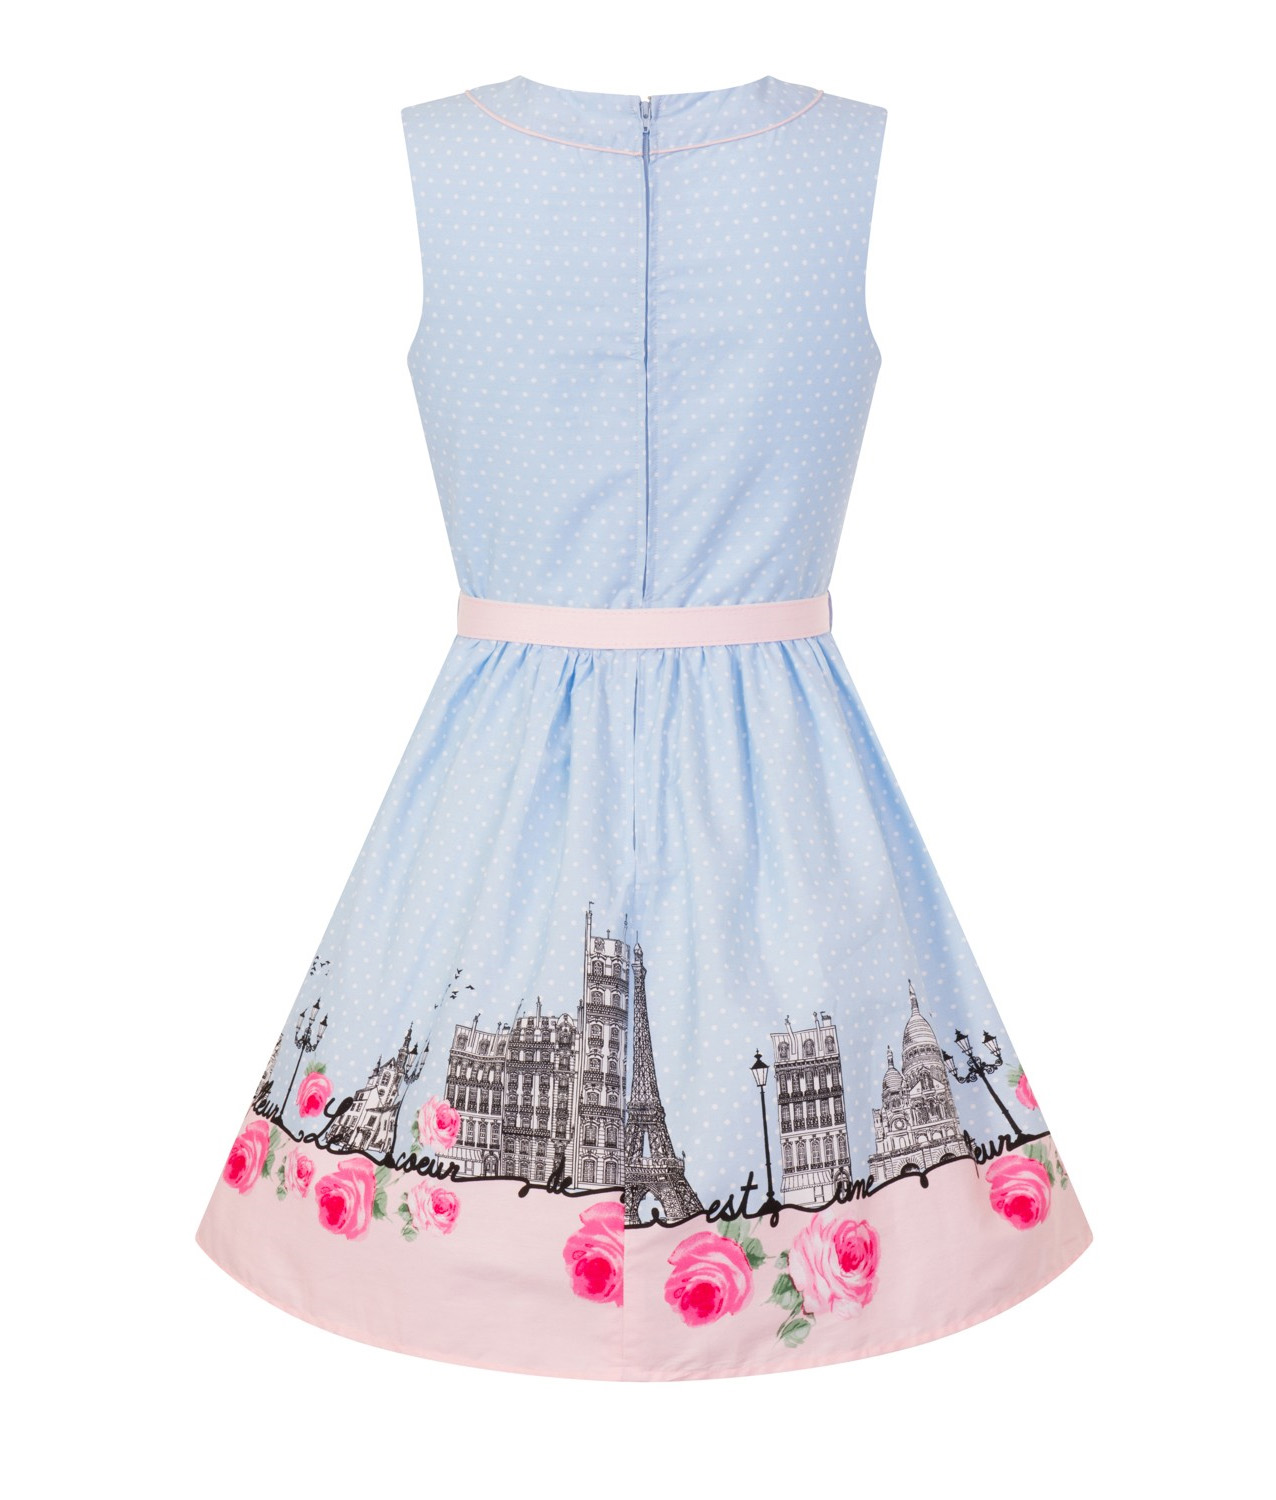 Hell-Bunny-50s-Vintage-Blue-Polka-Dot-PANAME-Mini-Dress-Paris-All-Sizes thumbnail 19